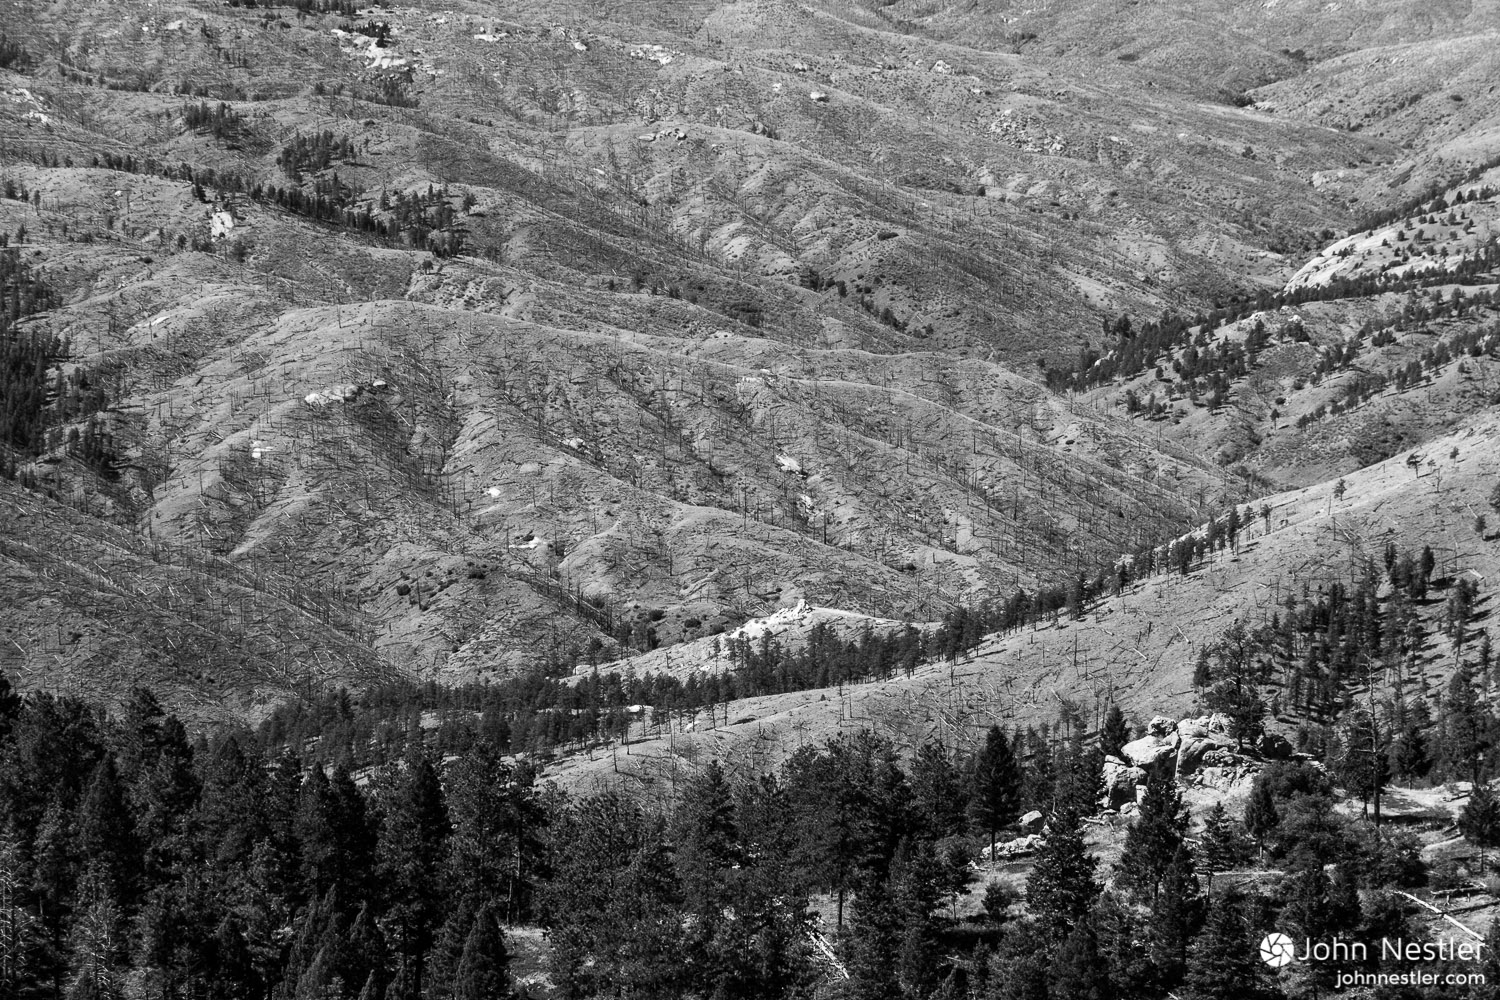 An aerial view of the devastation from the 1996 Buffalo Creek fire. You can clearly see how slowly revegetation takes place in these Ponderosa Pine stands. Shot around Segment 2.